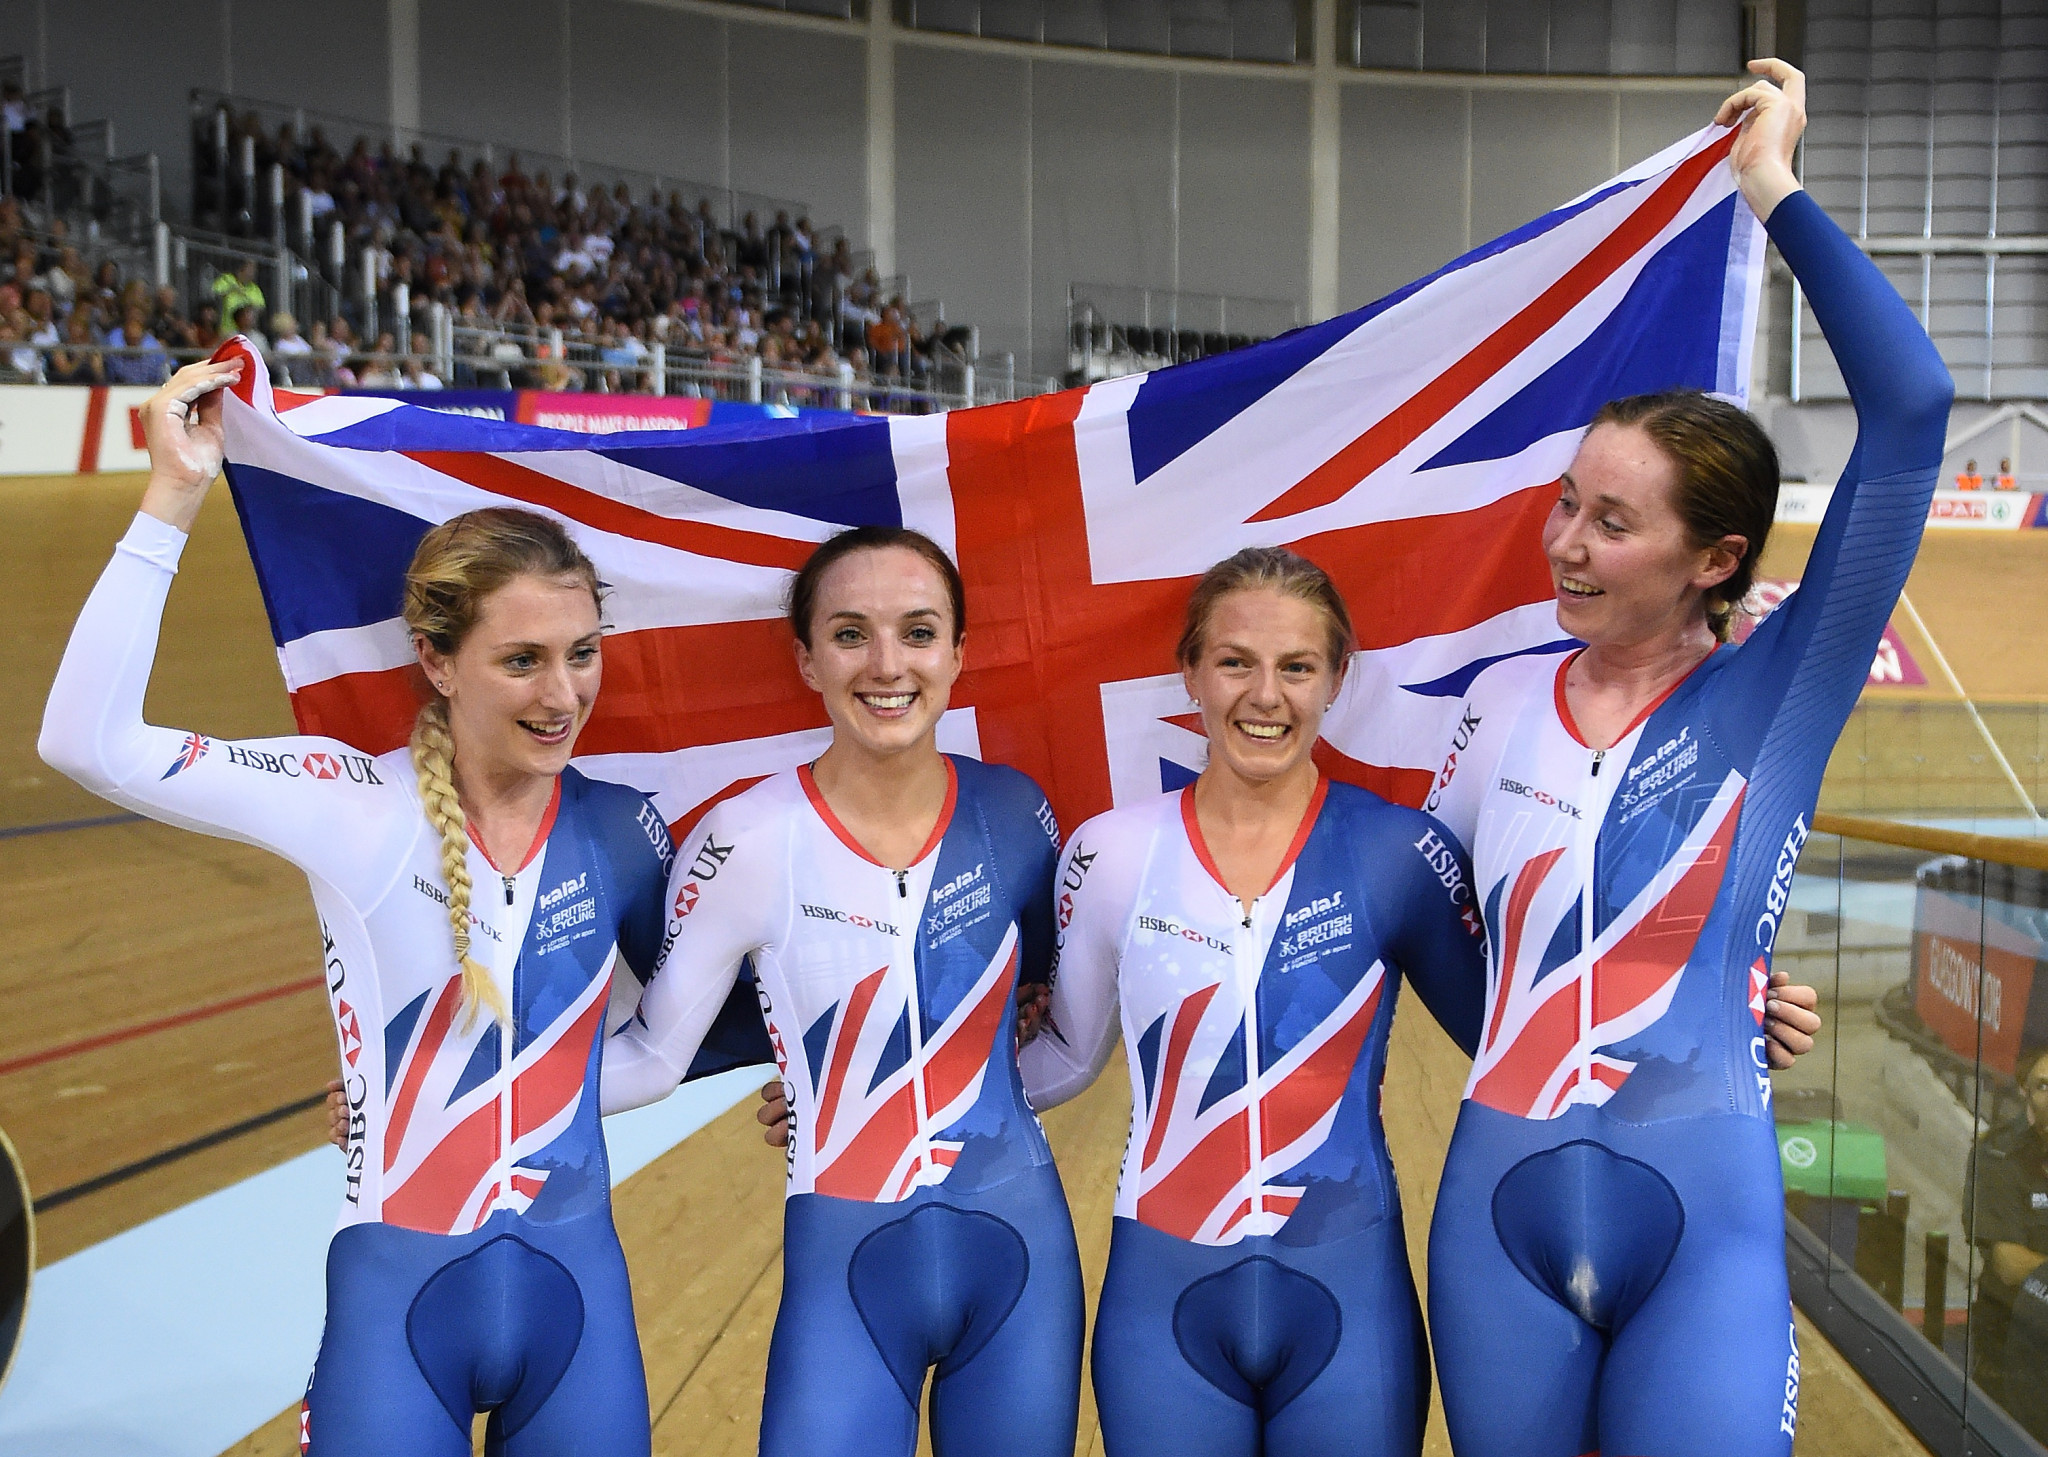 Britain's first gold of the European Championships came in the women's team pursuit ©Getty Images